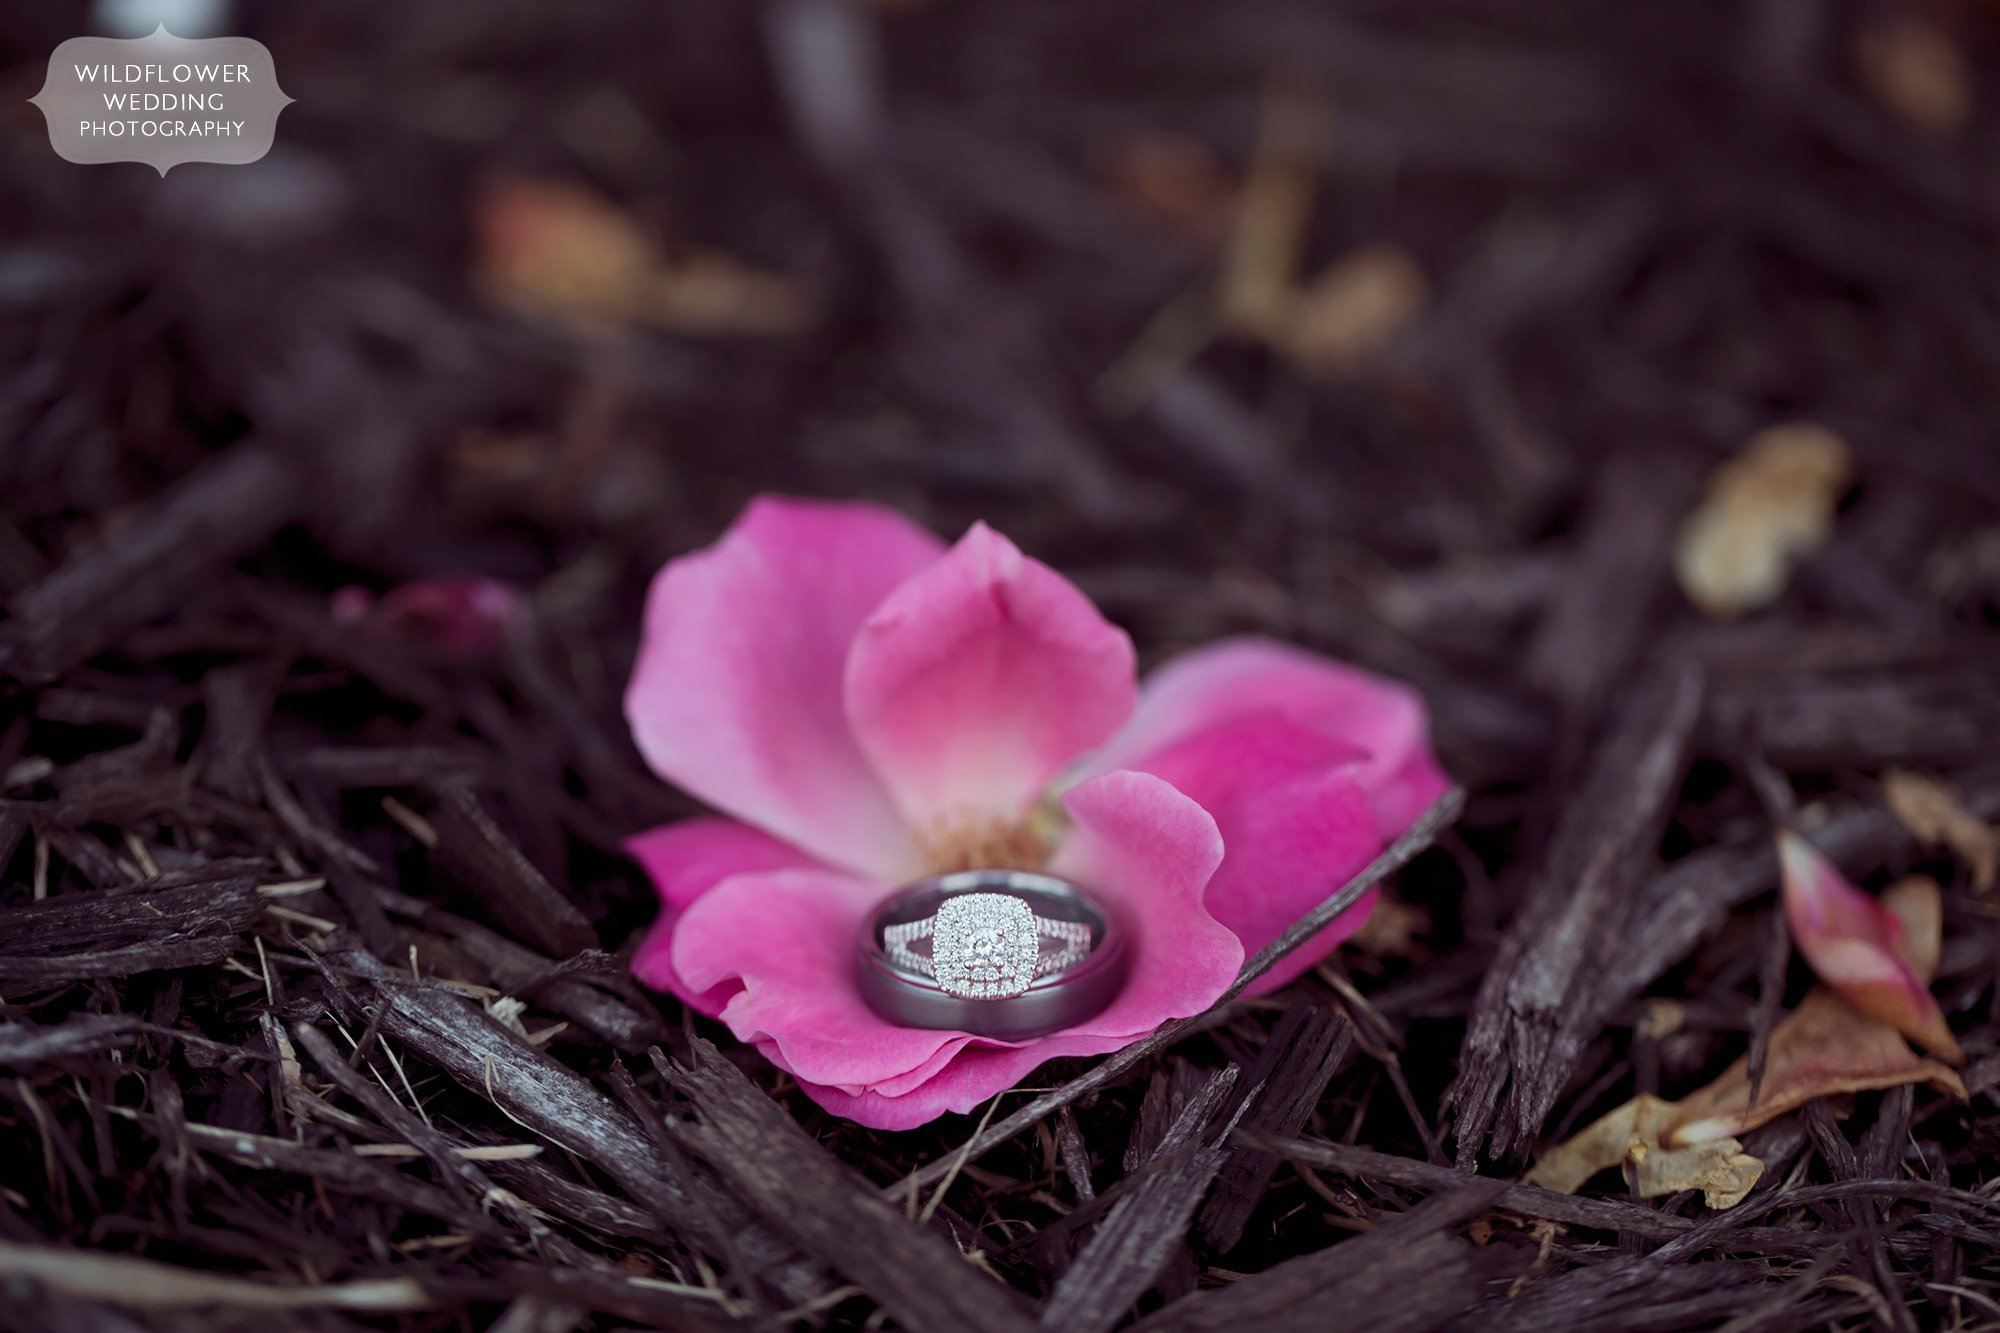 Wedding rings in a pink rose petals at the Jeff City Country Club in MO.